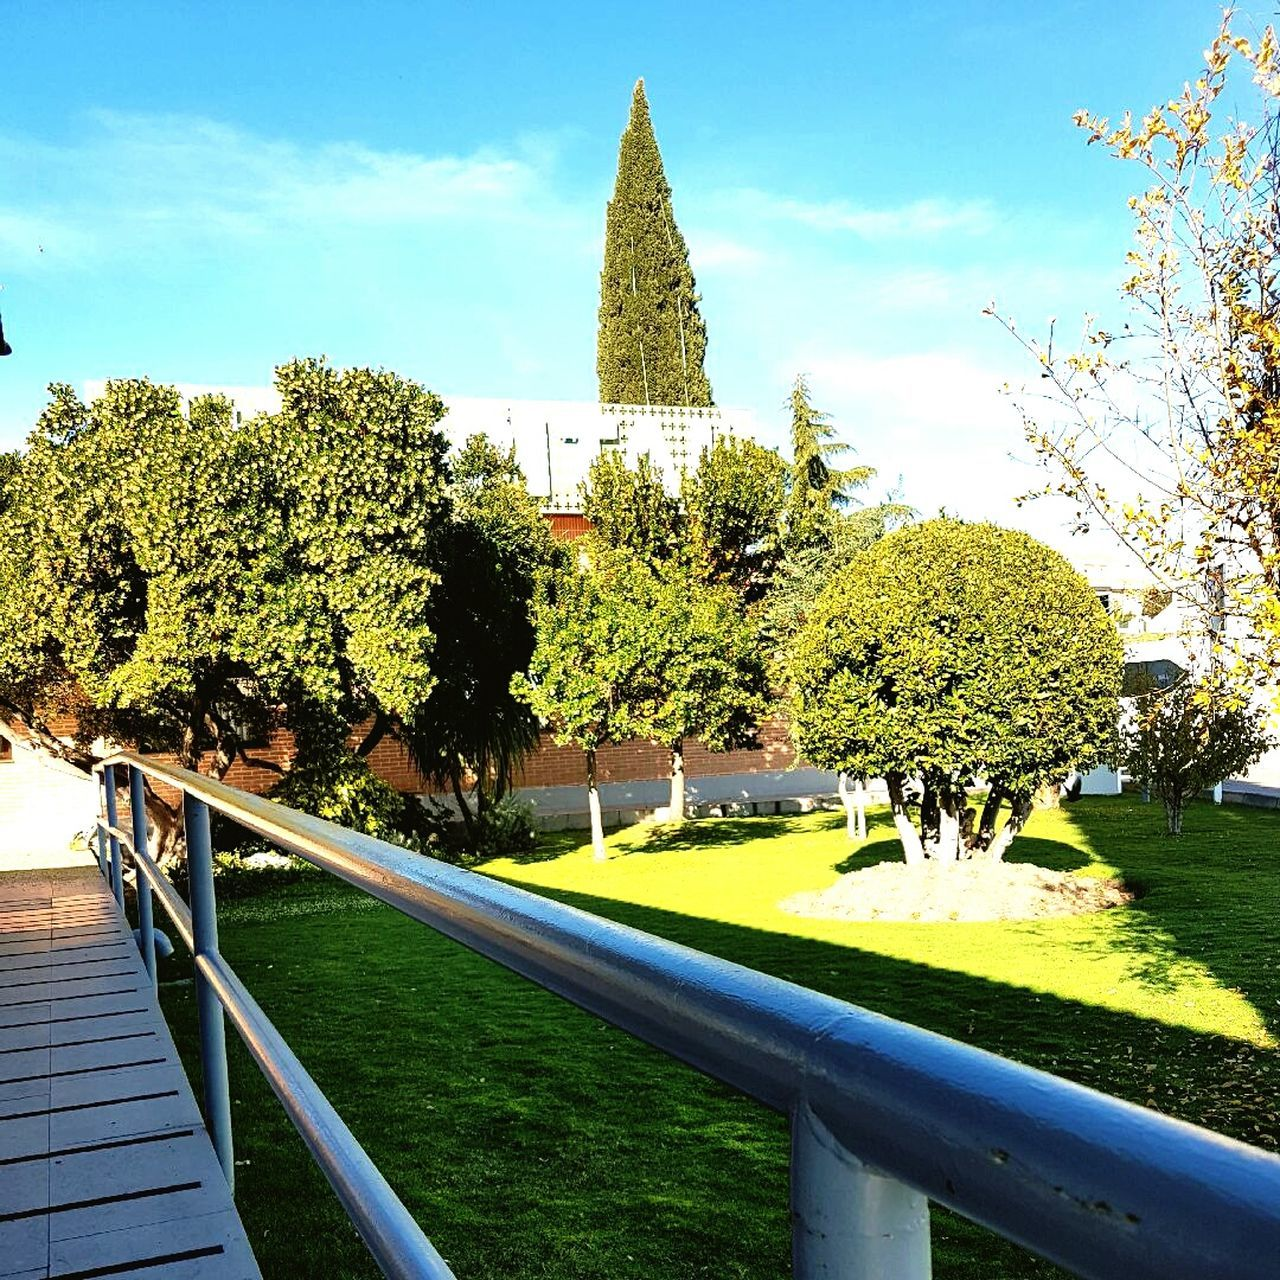 tree, day, architecture, park - man made space, green color, built structure, outdoors, growth, grass, no people, building exterior, nature, sky